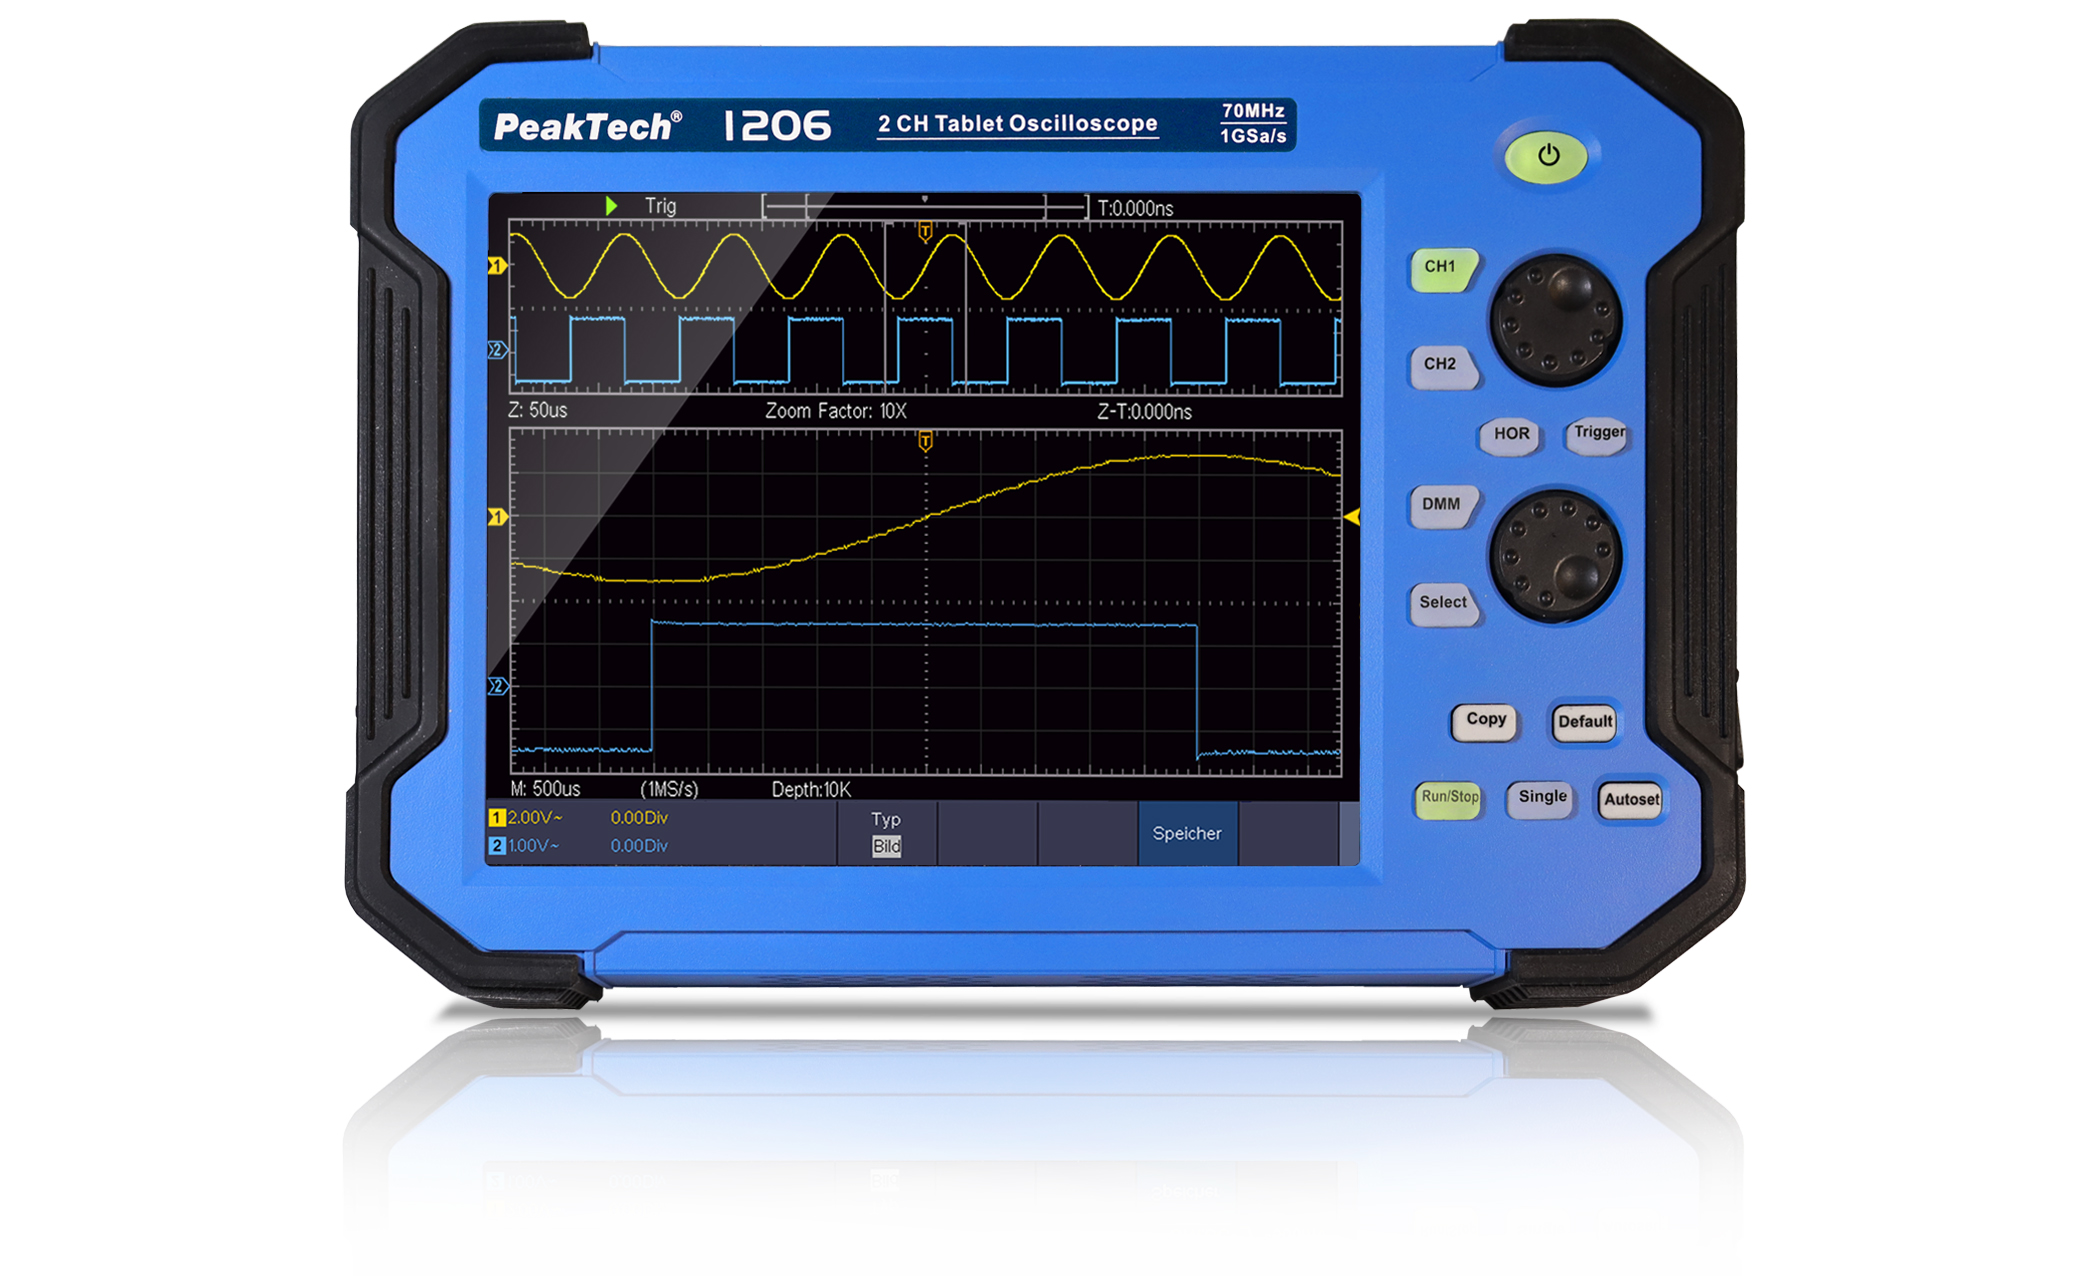 «PeakTech® P 1206» 70 MHz / 2 CH, 1 GS/s tablet oscilloscope